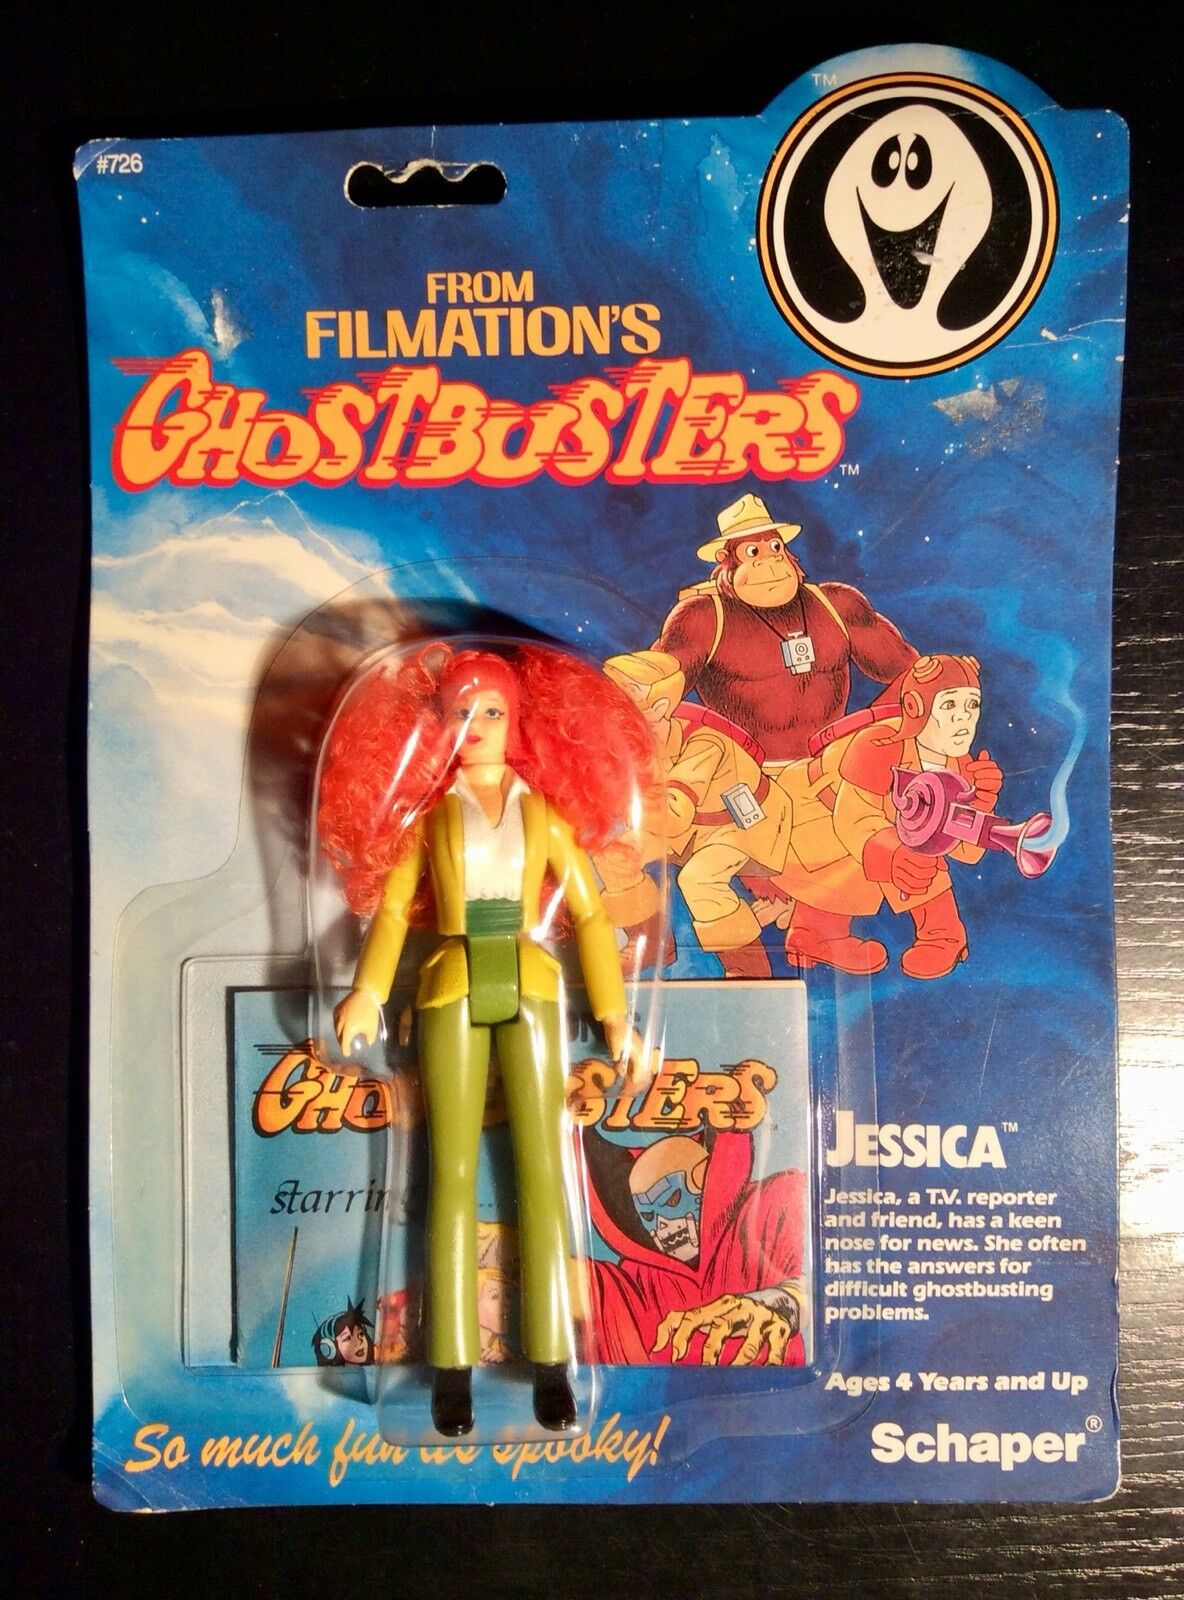 Film formation ghostbusters jessica moc